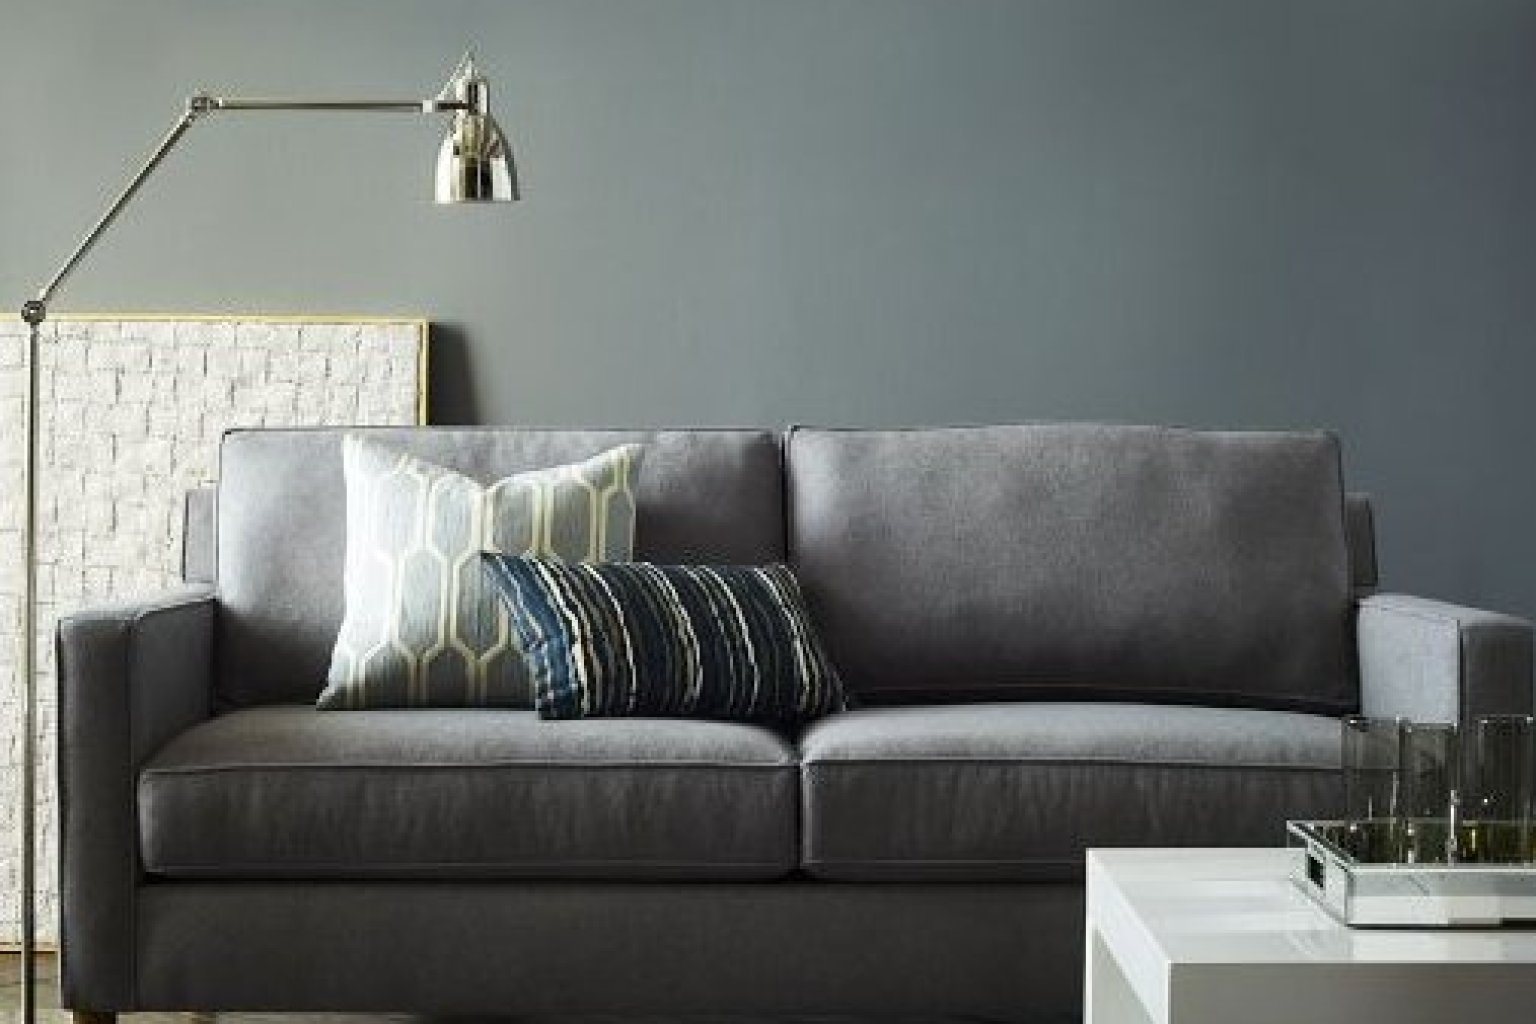 Bon 6 Couches For Small Apartments That Will Actually Fit In Your Space  (PHOTOS) | HuffPost